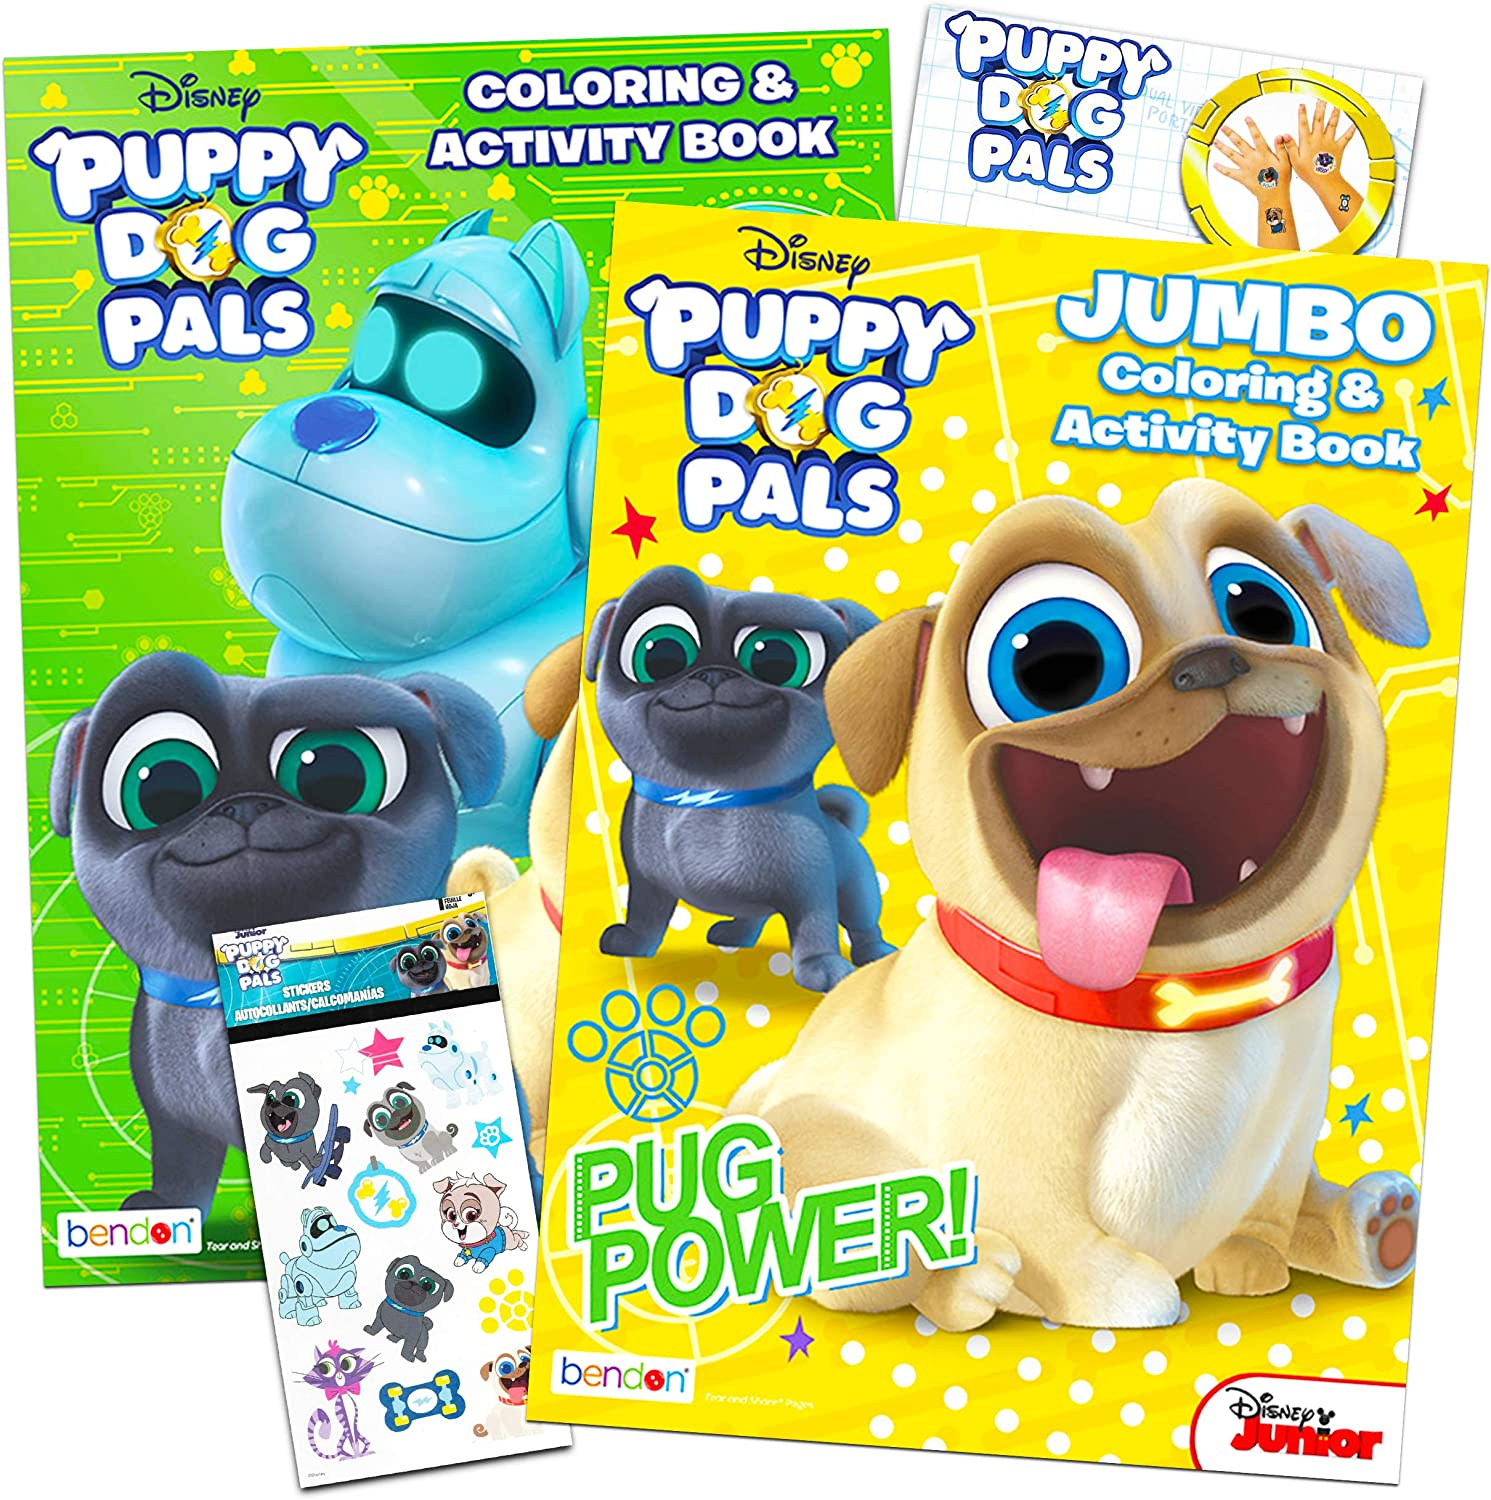 Puppy Dog Pals Coloring Book Super Set ~ Set of 2 Puppy Dog Pals Activity Books with Bonus Sticker and Tattoos (Puppy Dog Pals Party Supplies Bundle)